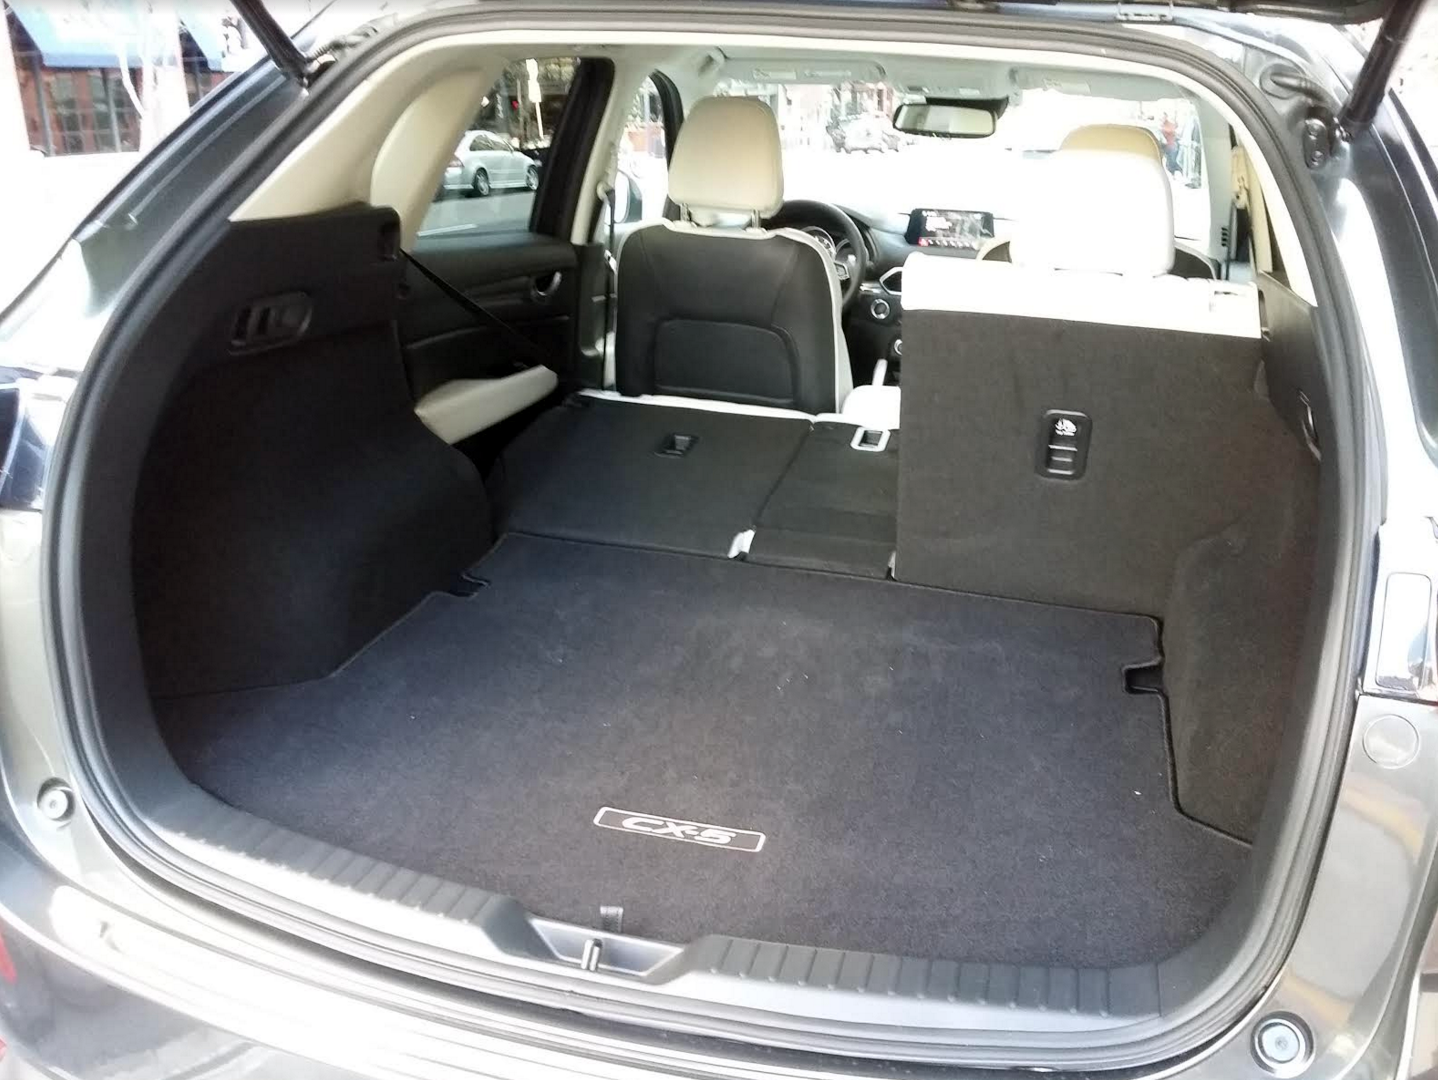 Toyota Rav4 Cargo Space Dimensions >> Toyota Rav4 Cargo Space Dimensions New Car Release And | Autos Post